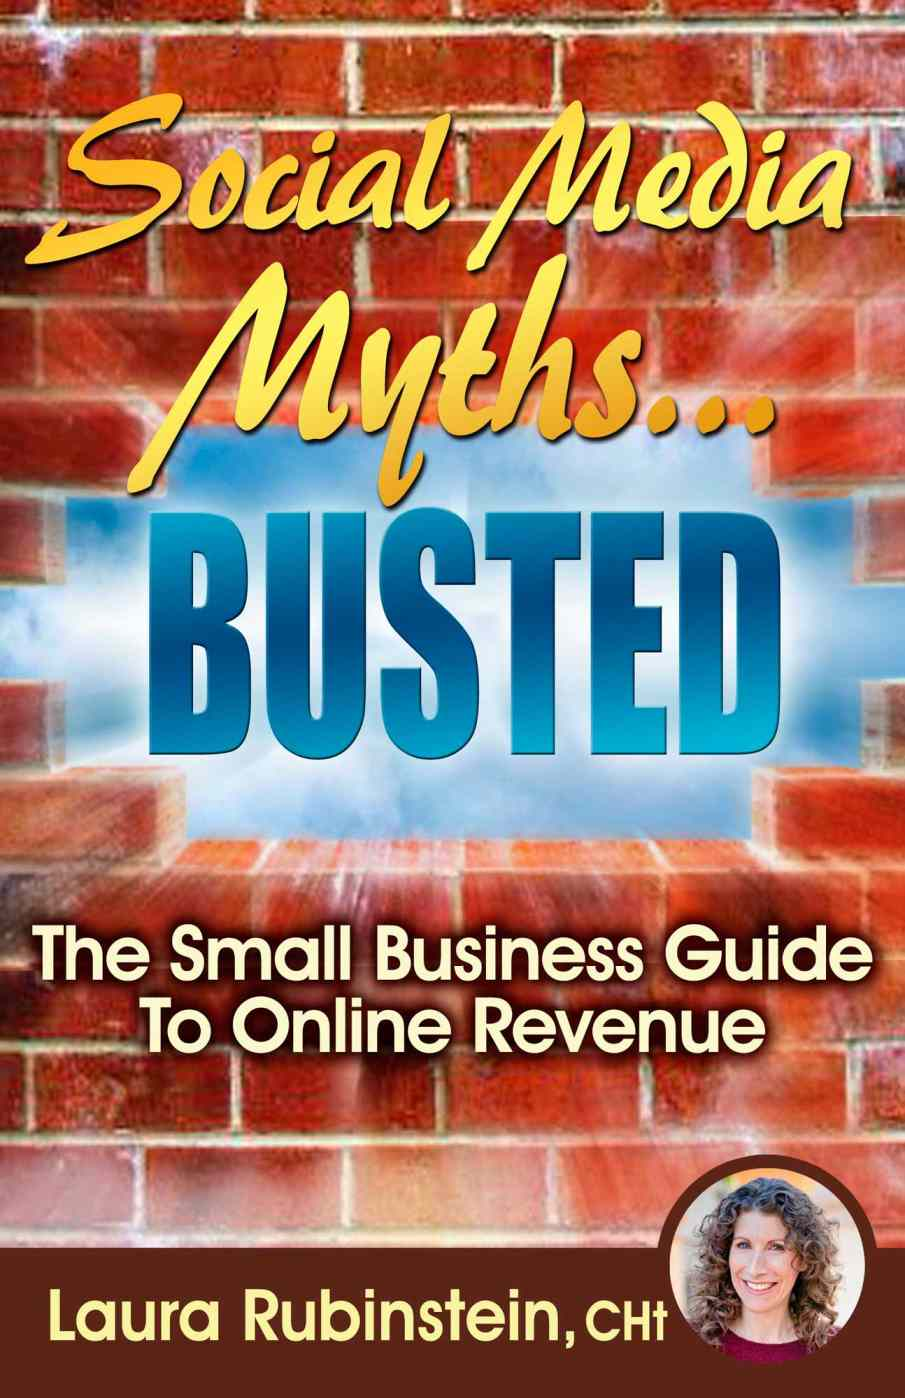 social-media-myths-busted-book-laura-rubinstein